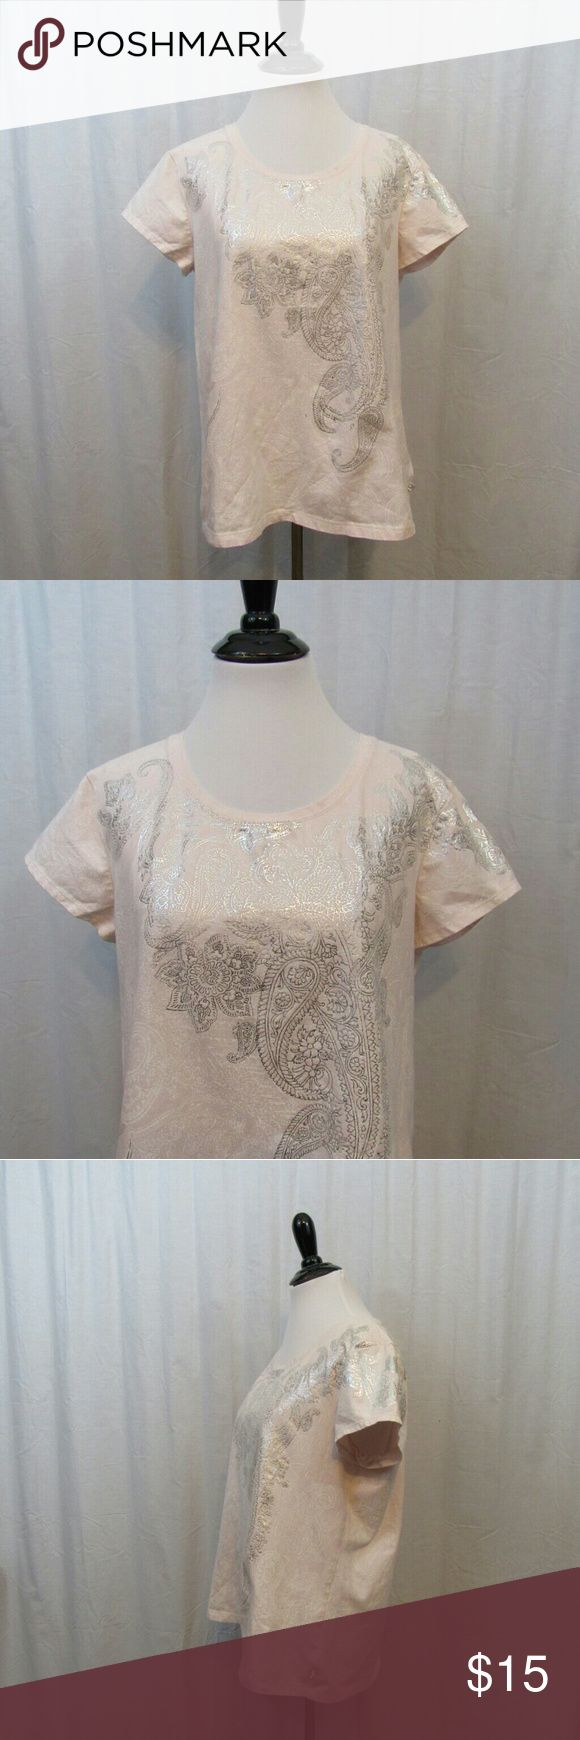 """Zenergy Chico's Pink Silver Short Sleeve Top 2 L Brand: Zenergy by Chico's Size: 2 Material: 95% Cotton 5% Spandex Care Instructions: Machine Wash  Bust: 40"""" Sleeves: 5"""" Length: 23""""  All clothes are in excellent used condition. No tears, stains or holes unless otherwise I noted.   P23 Chico's Tops Tees - Short Sleeve"""